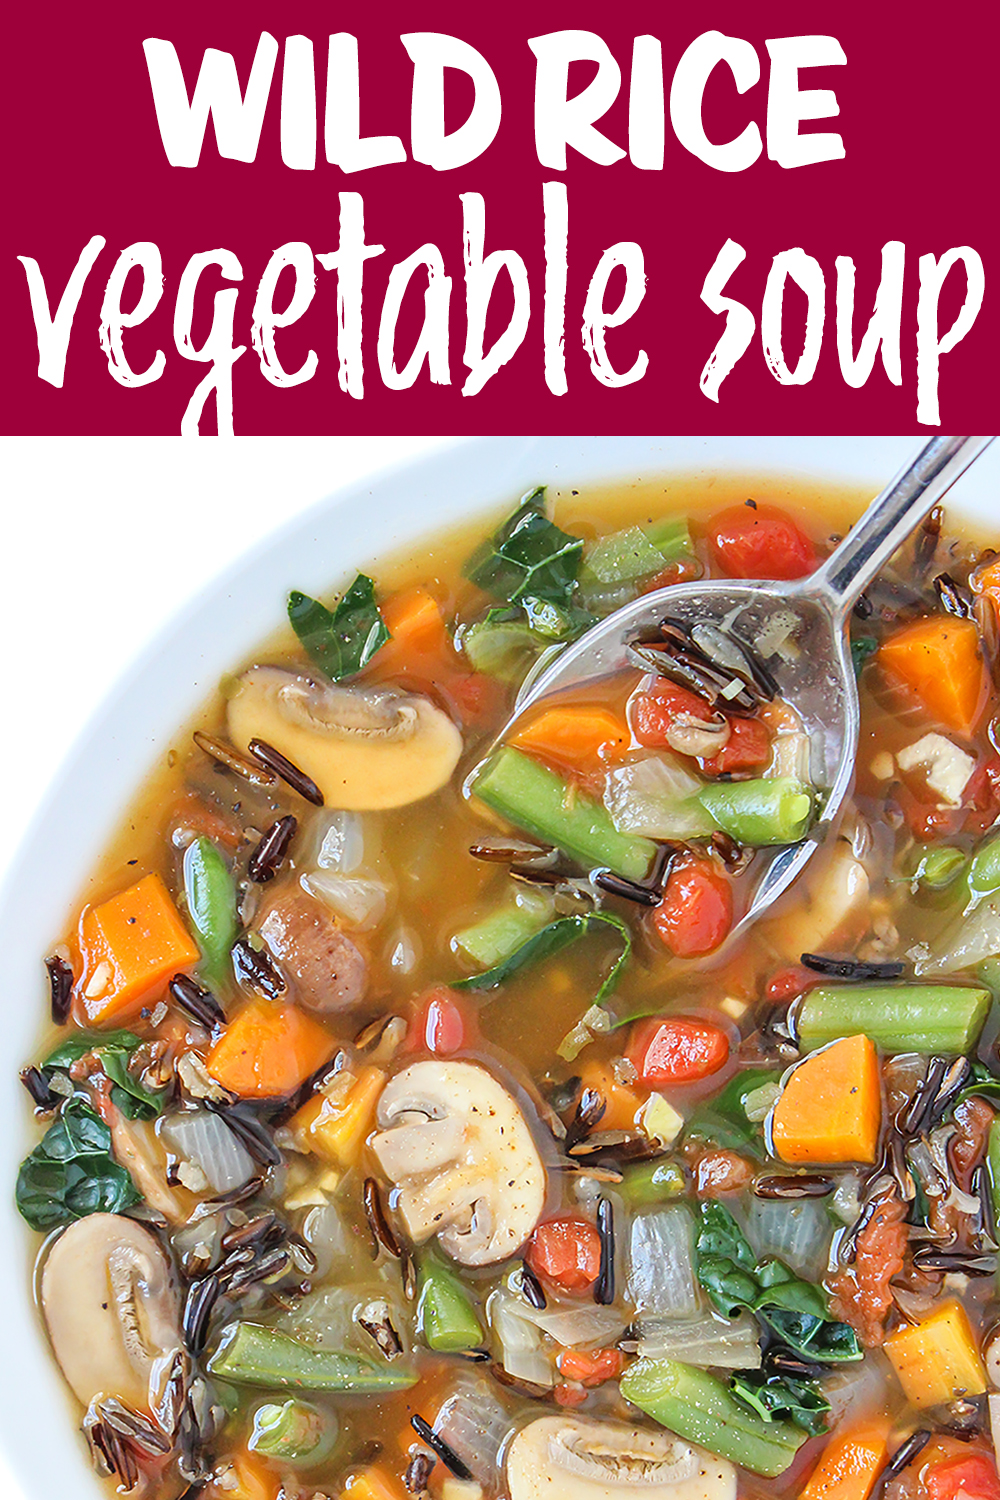 Wild rice vegetable soup photo collage